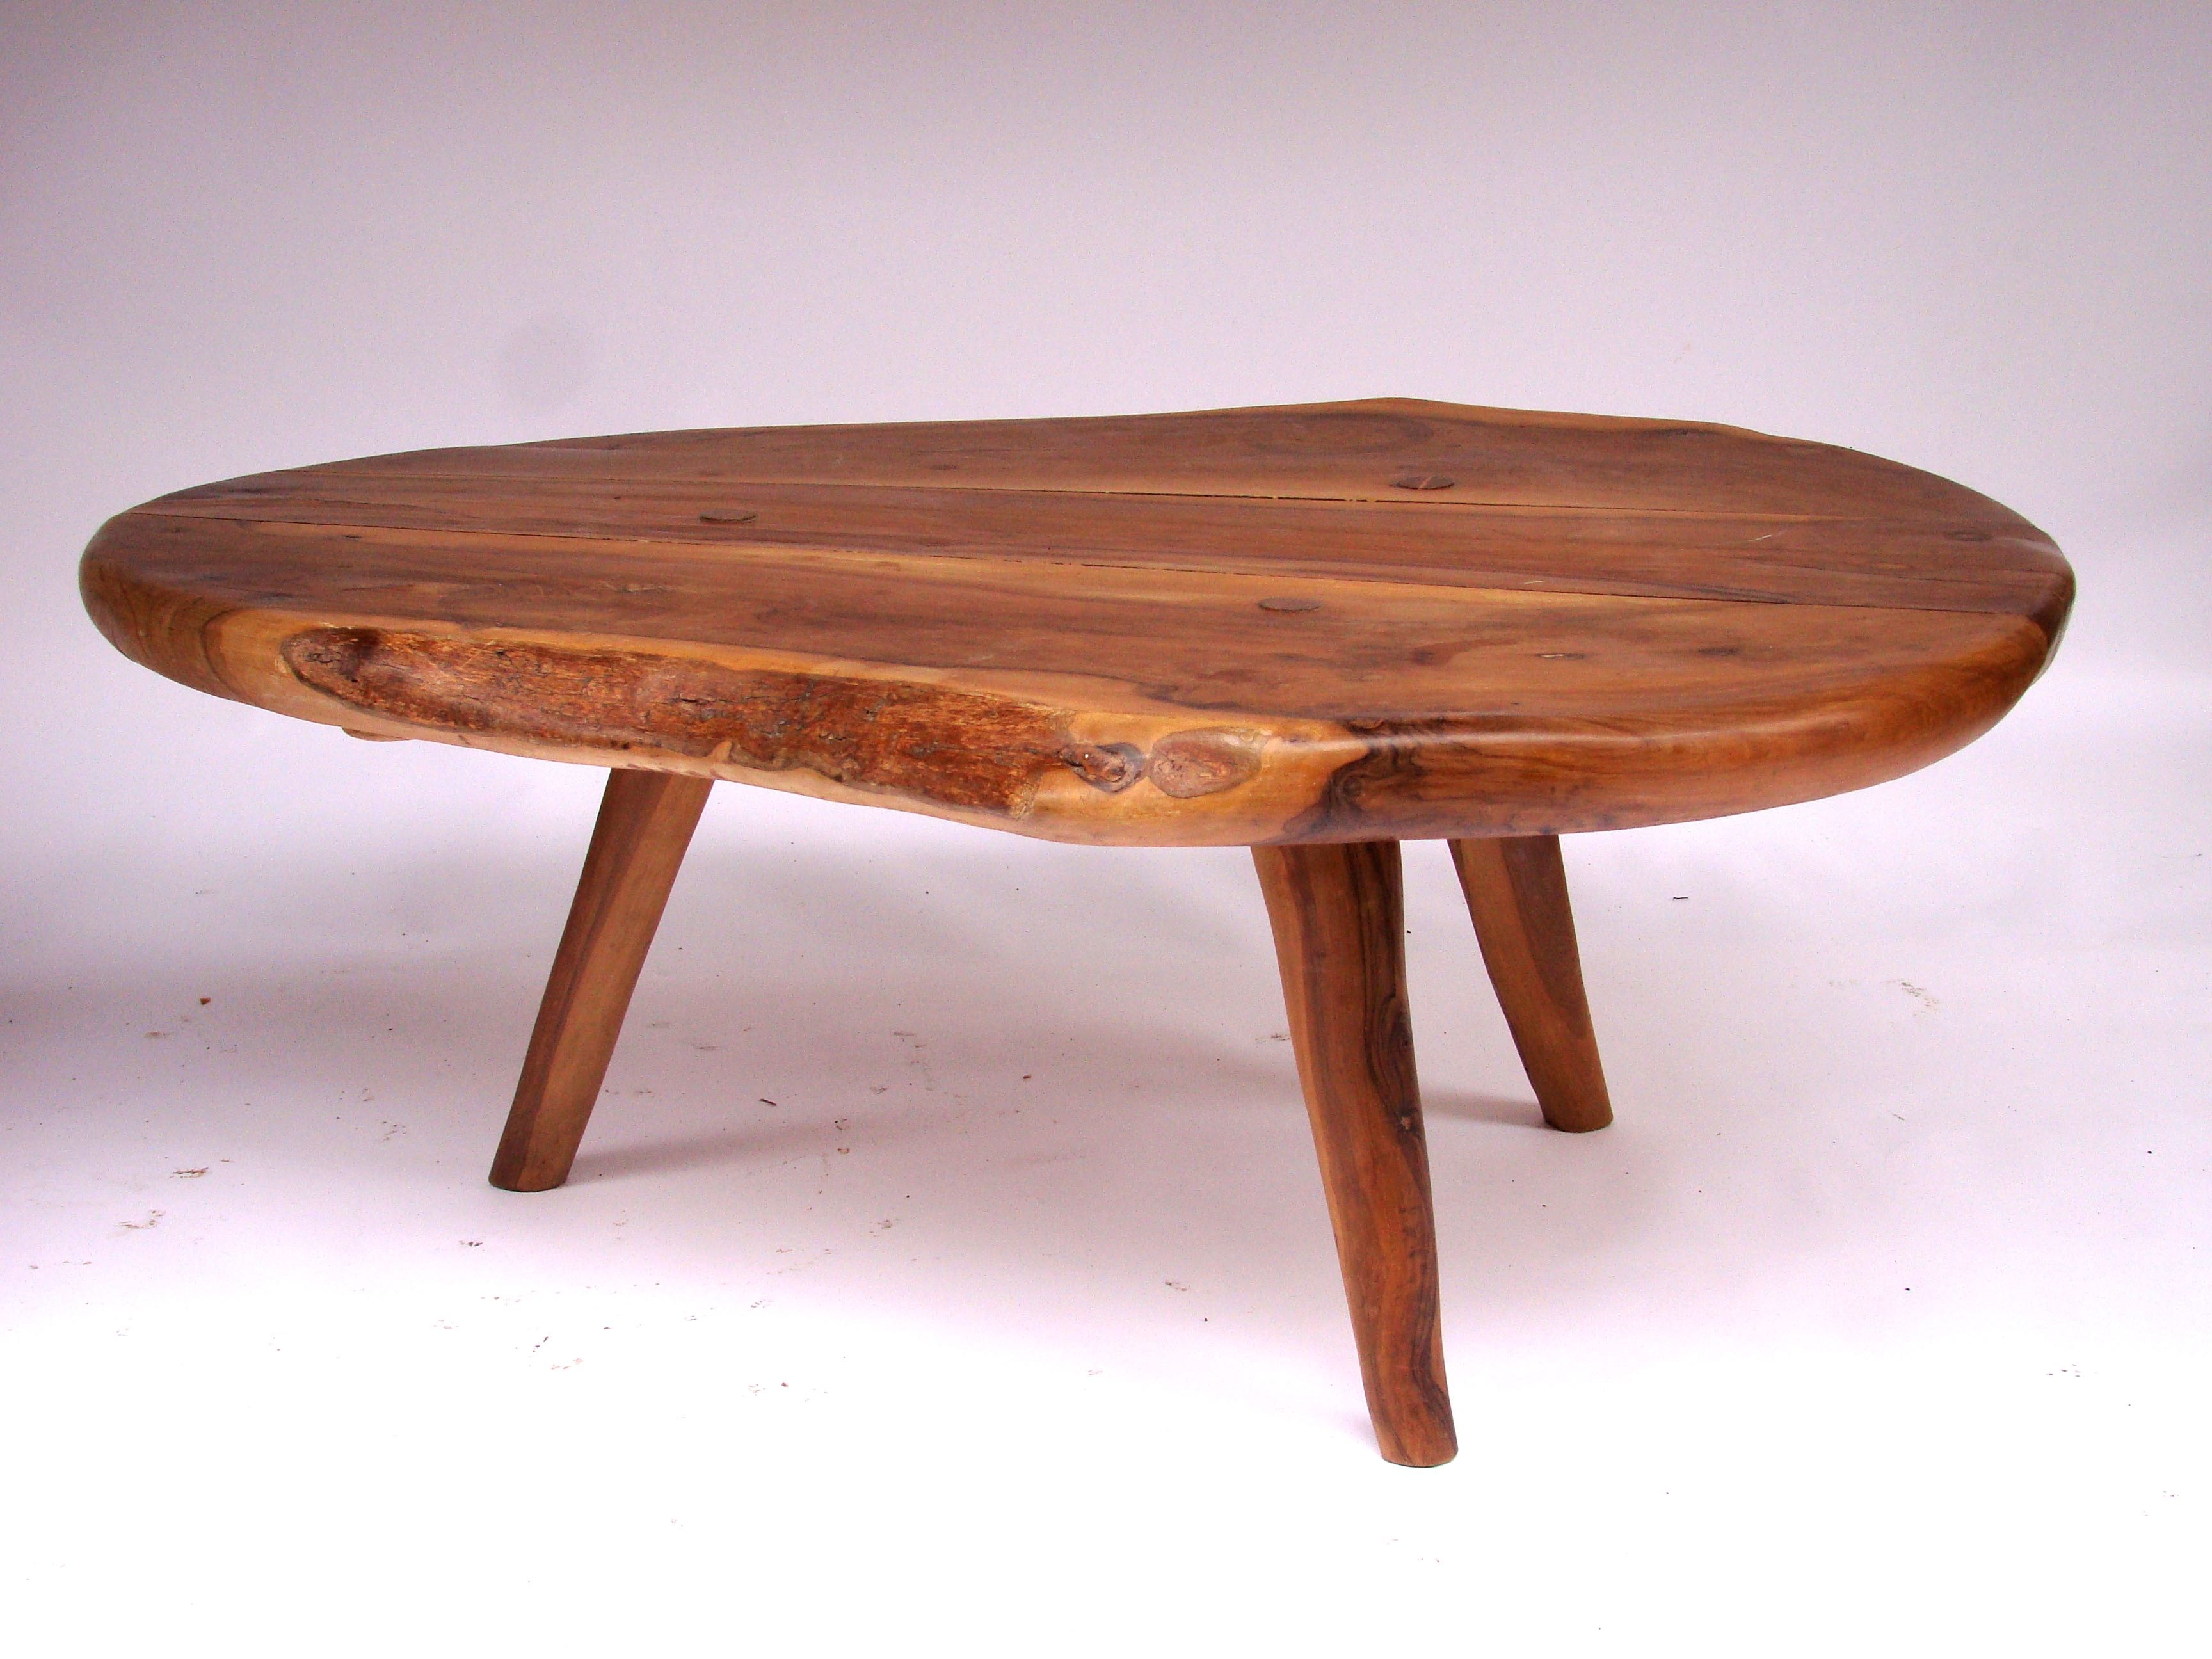 table basse en bois d 39 olivier circa 1950 paul bert serpette